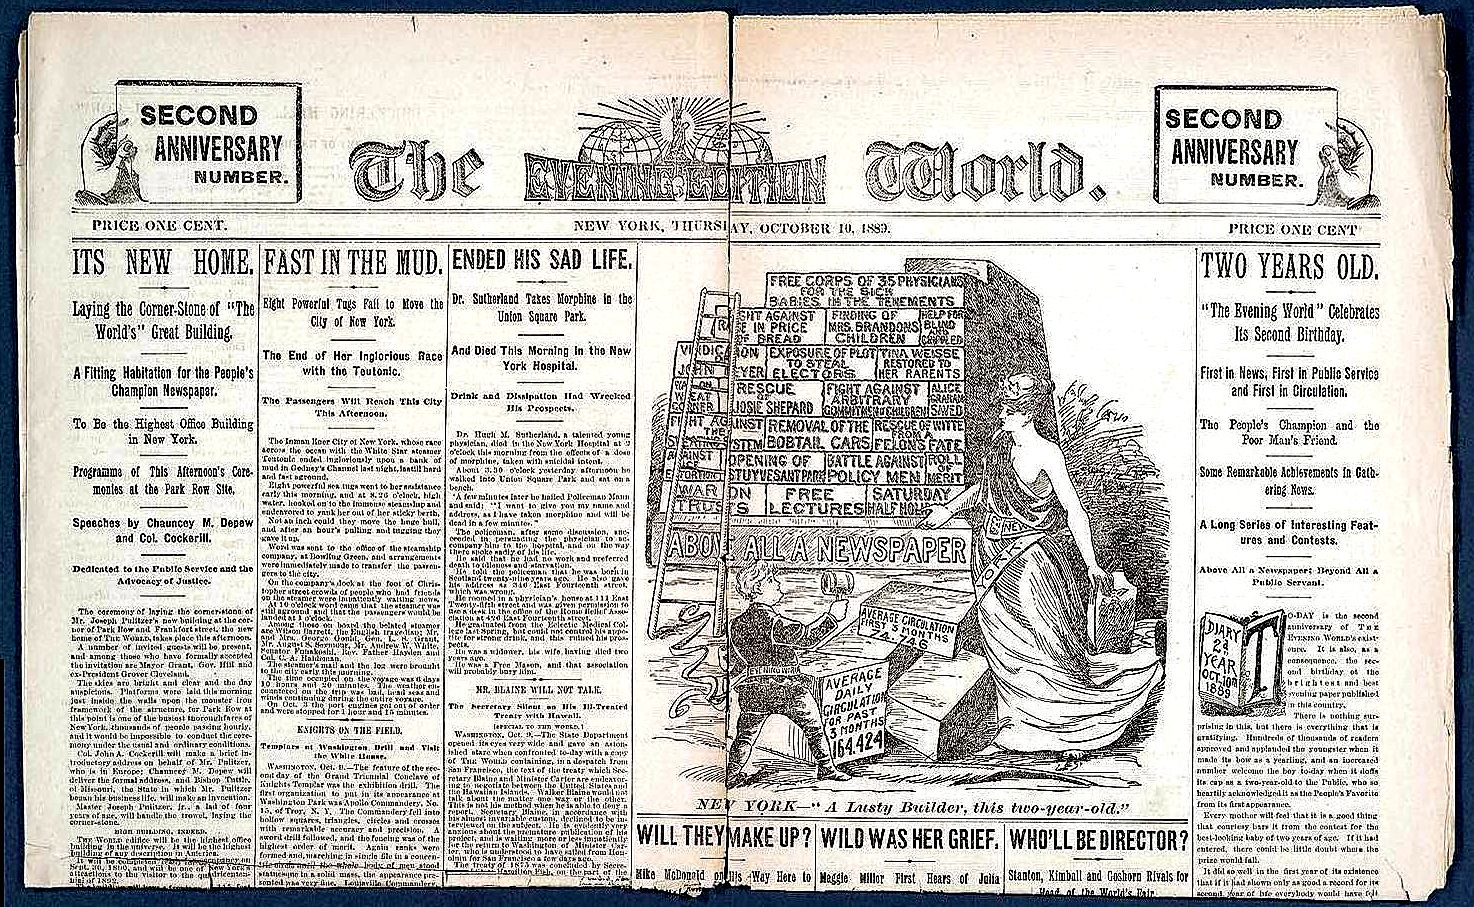 The World - Evening Edition - Second Anniversary Number World Papers - October 10 1889 2